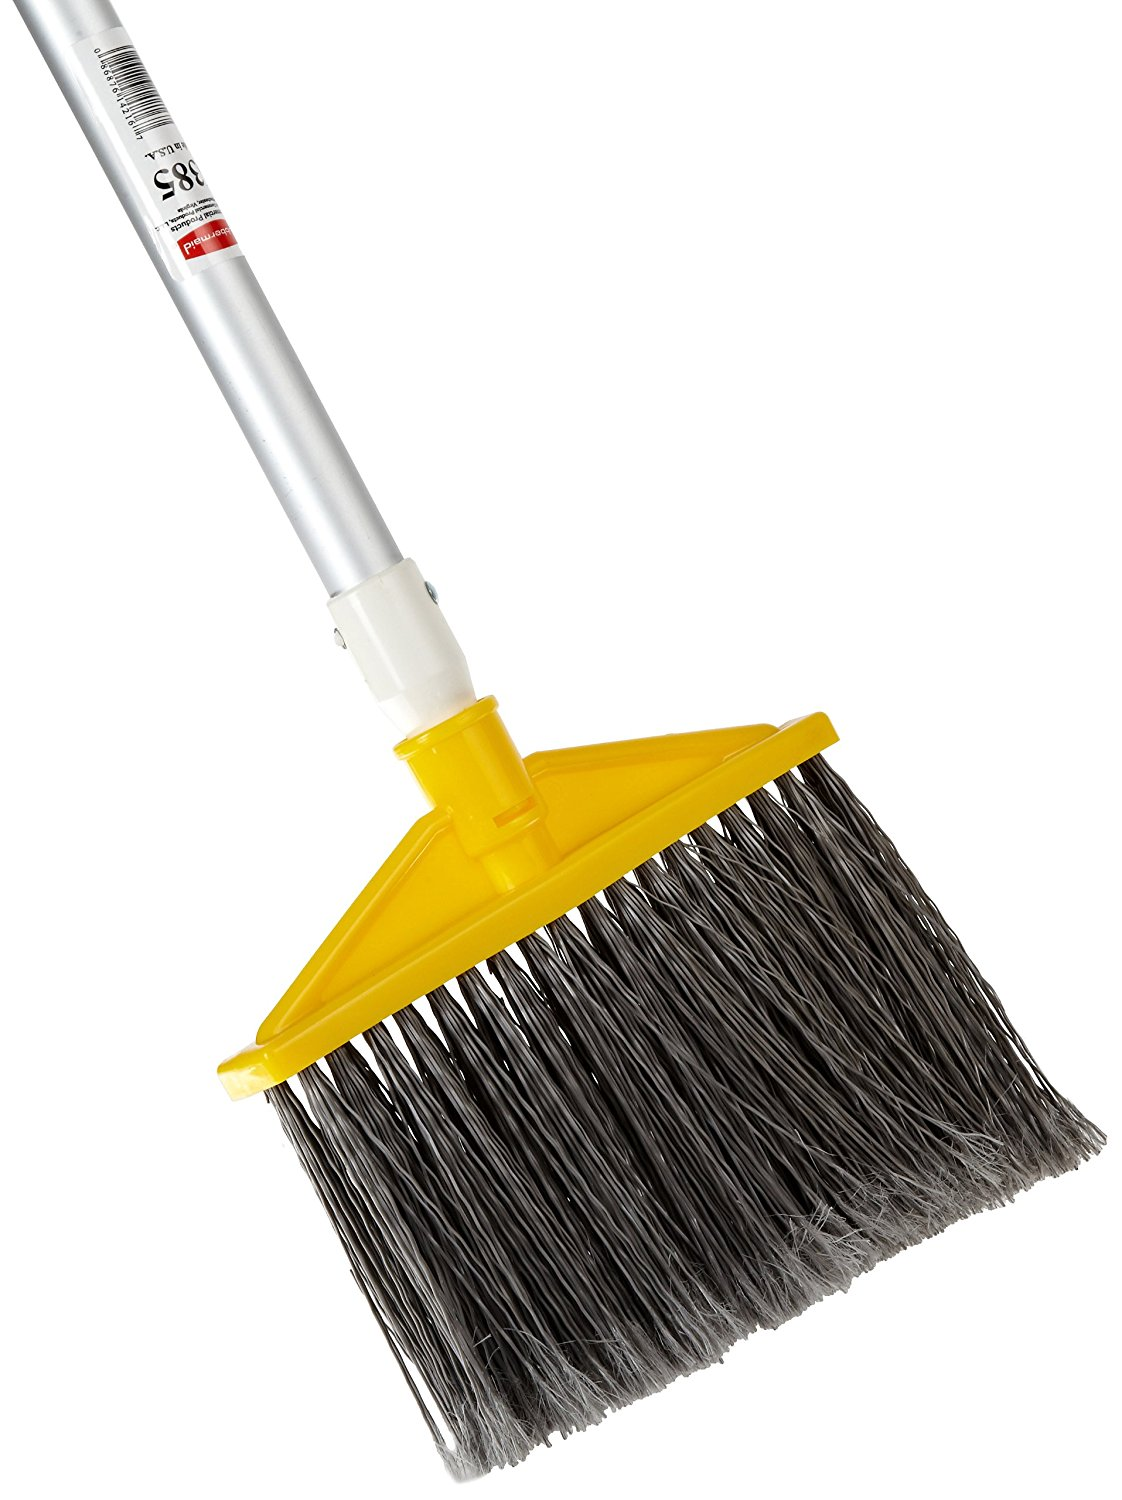 Rubbermaid Brute Angled Large Broom